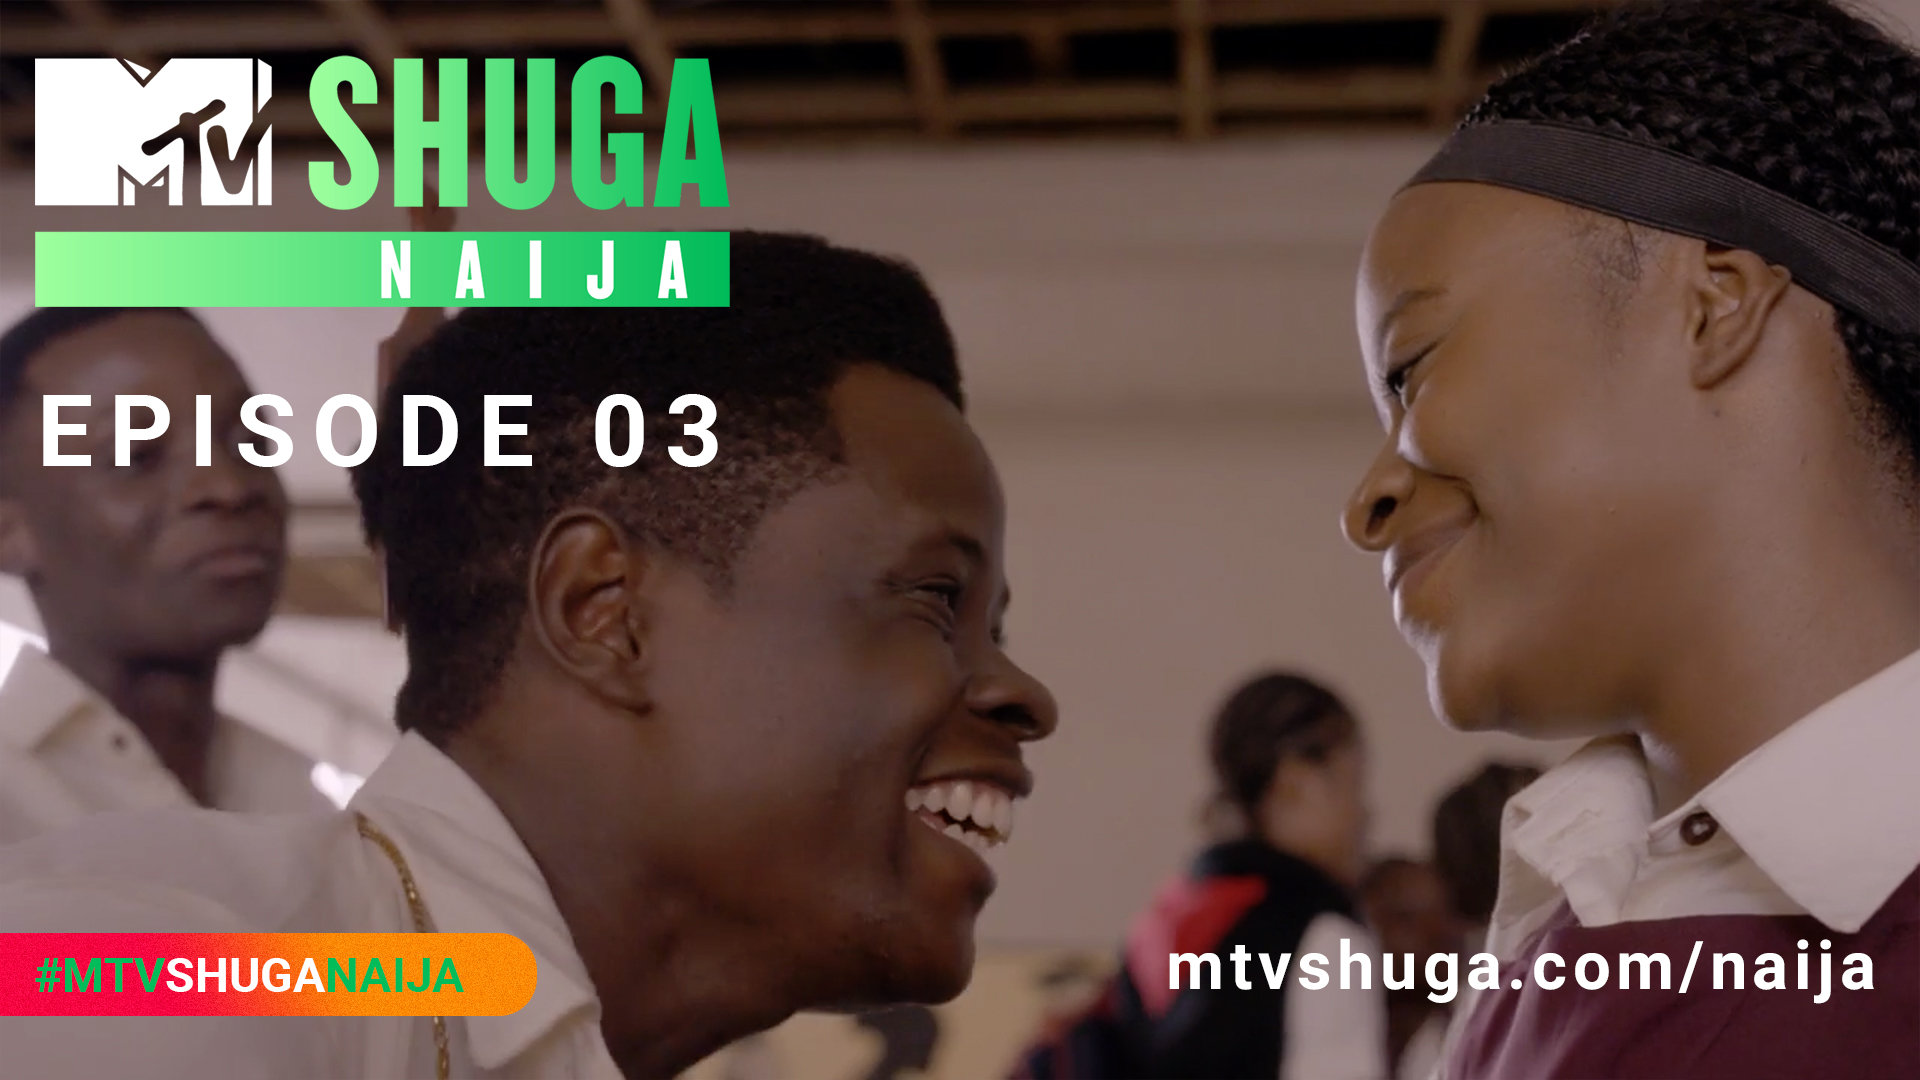 #MTVShugaNaija: Tobi Takes A Stand In Episode 3, But At What Cost?